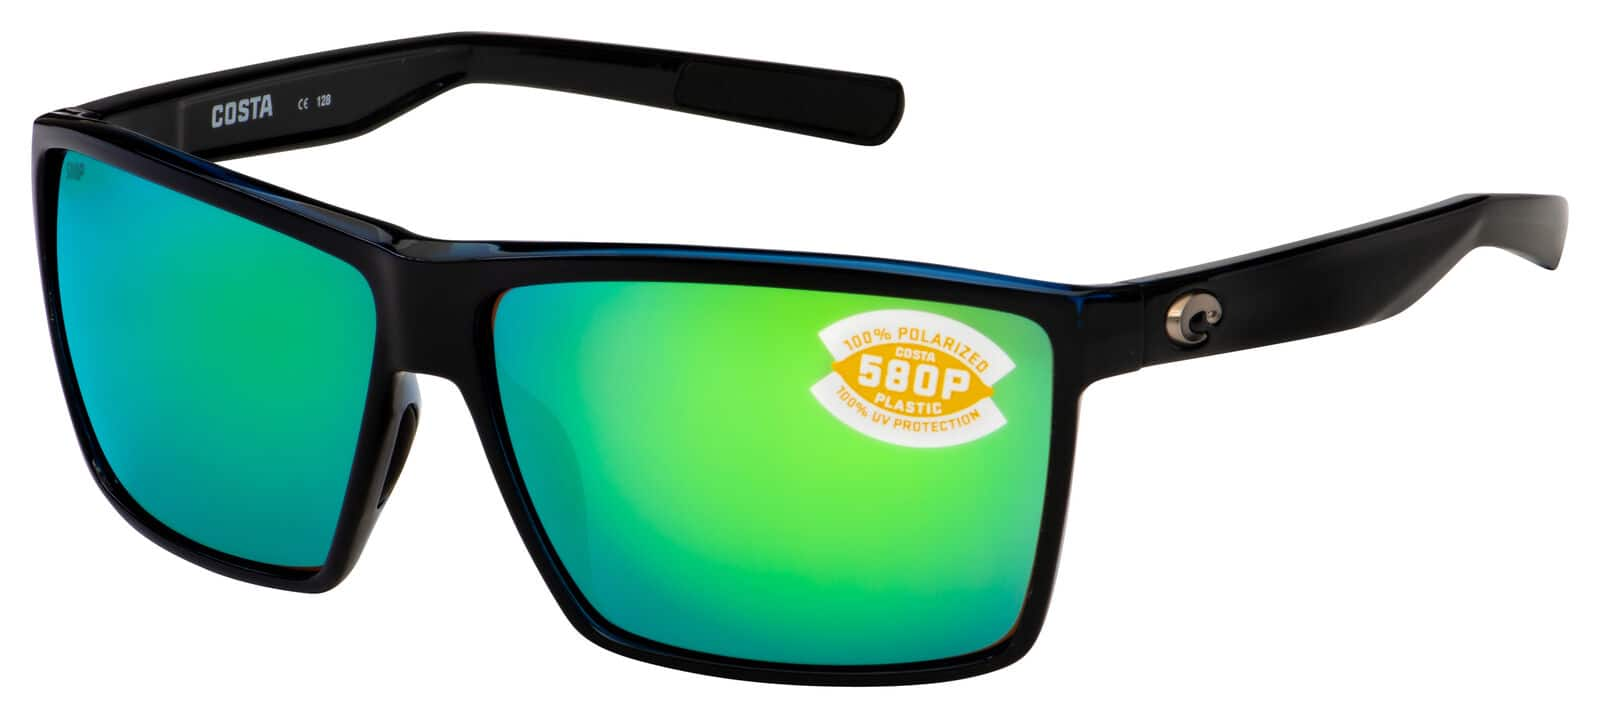 Costa Del Mar Sunglasses Sale Up To 53% Off: Starting From $74.73 + Free Shipping (eBay Daily Deal)